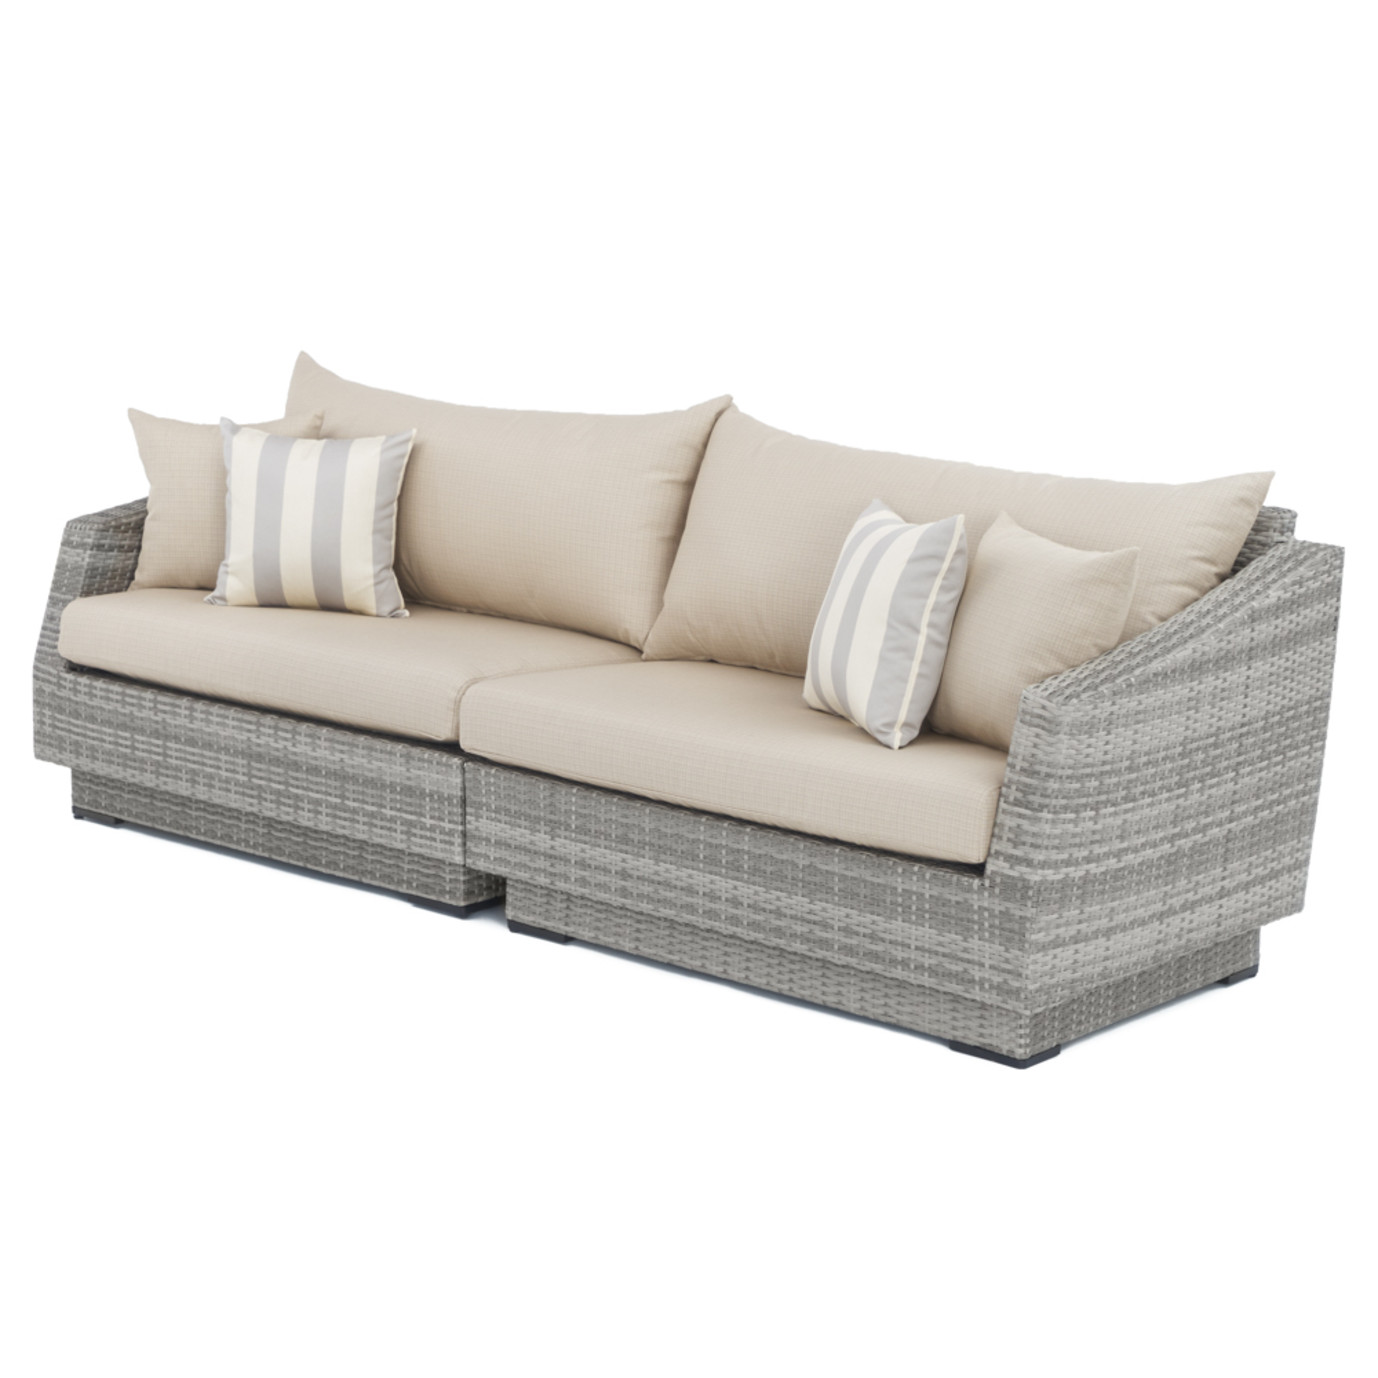 Cannes™ Sofa - Slate Gray